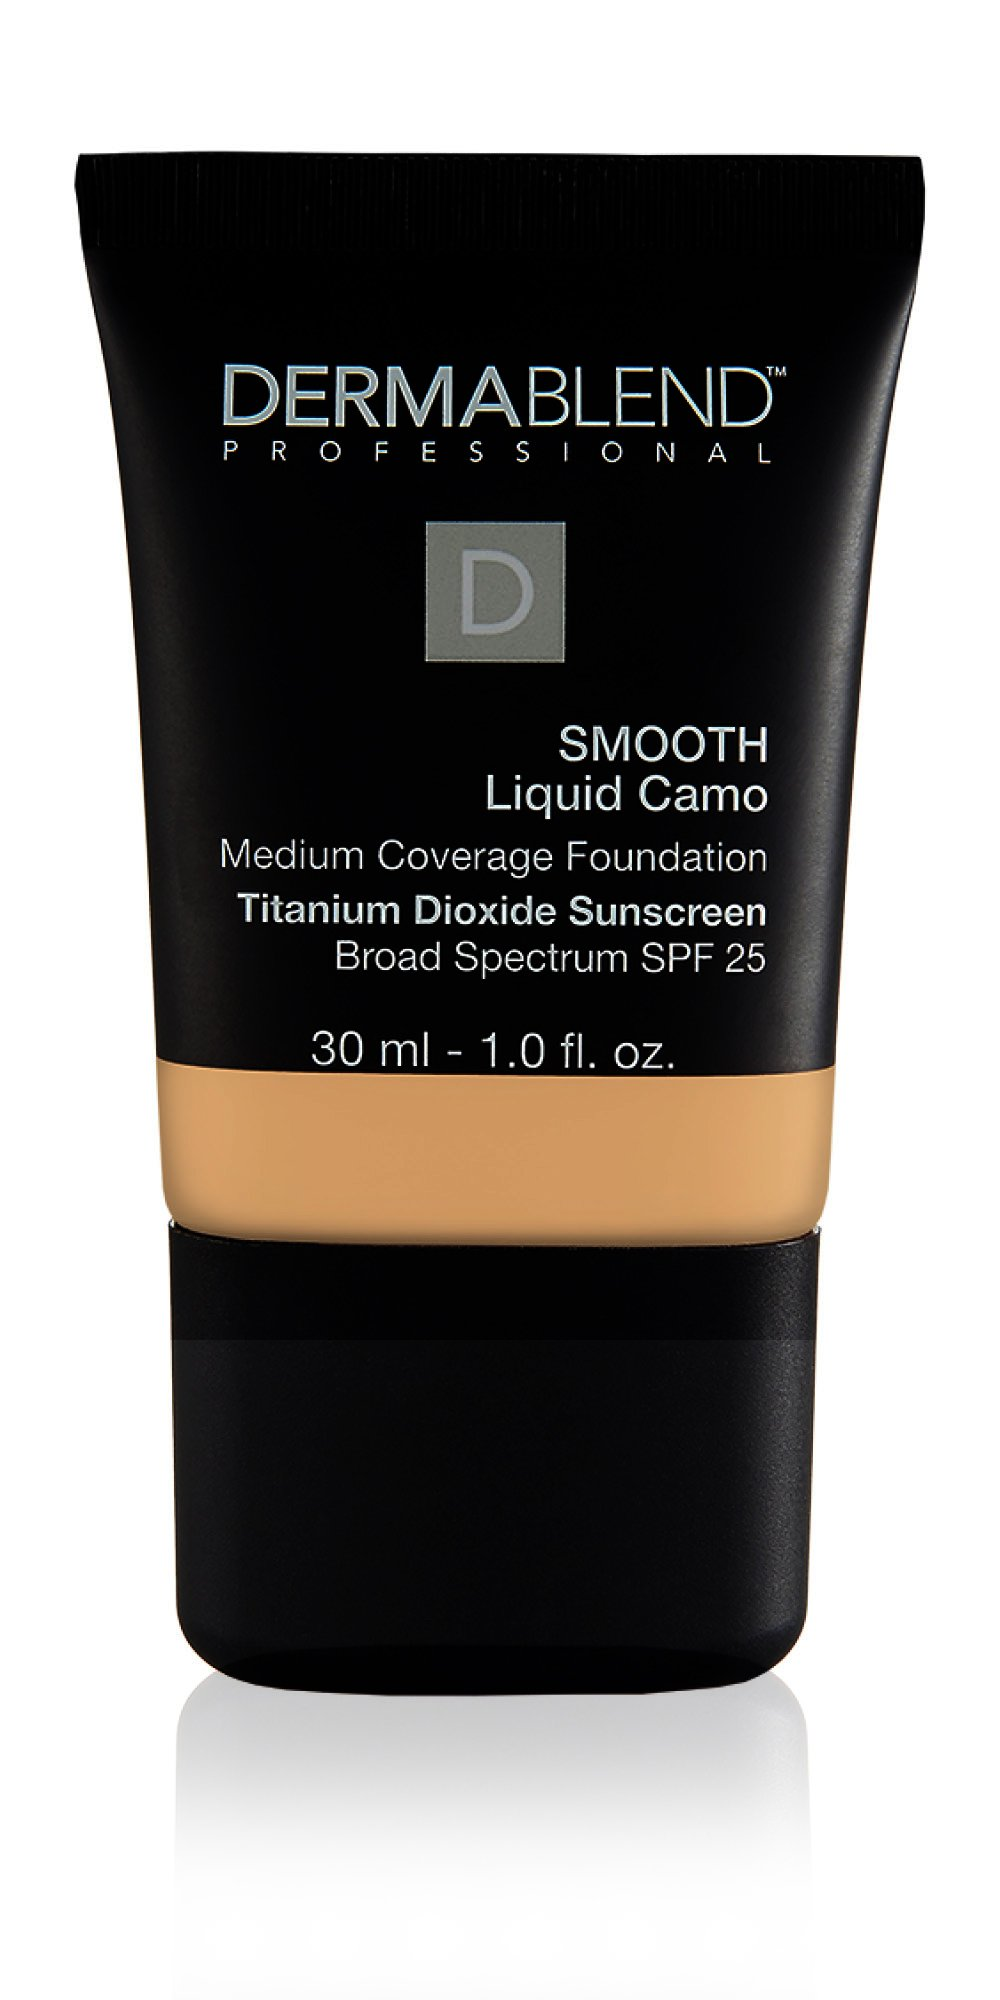 Dermablend Smooth Liquid Camo Foundation for Dry Skin with SPF 25, 1 Fl. Oz., 30N Camel: For light skin with neutral undertones by Dermablend